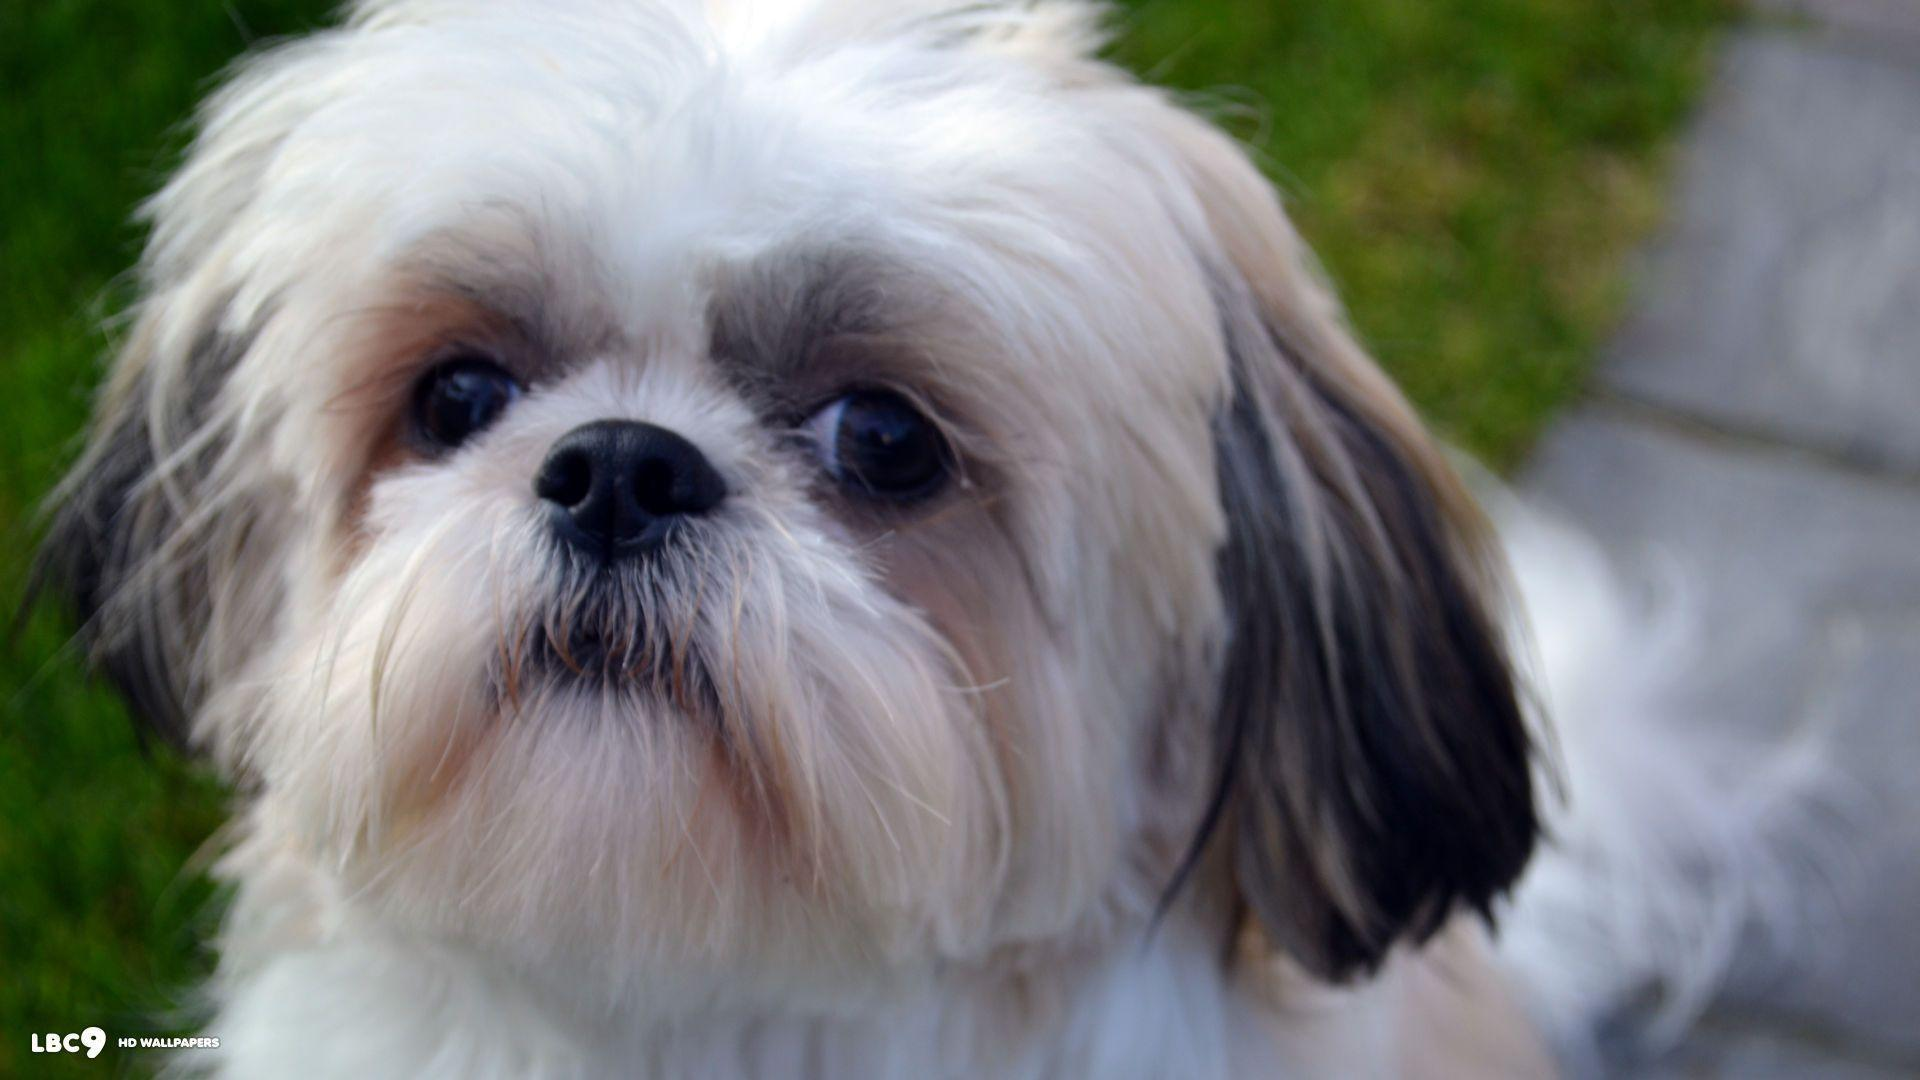 Shih Tzu Wallpapers - Wallpaper Cave